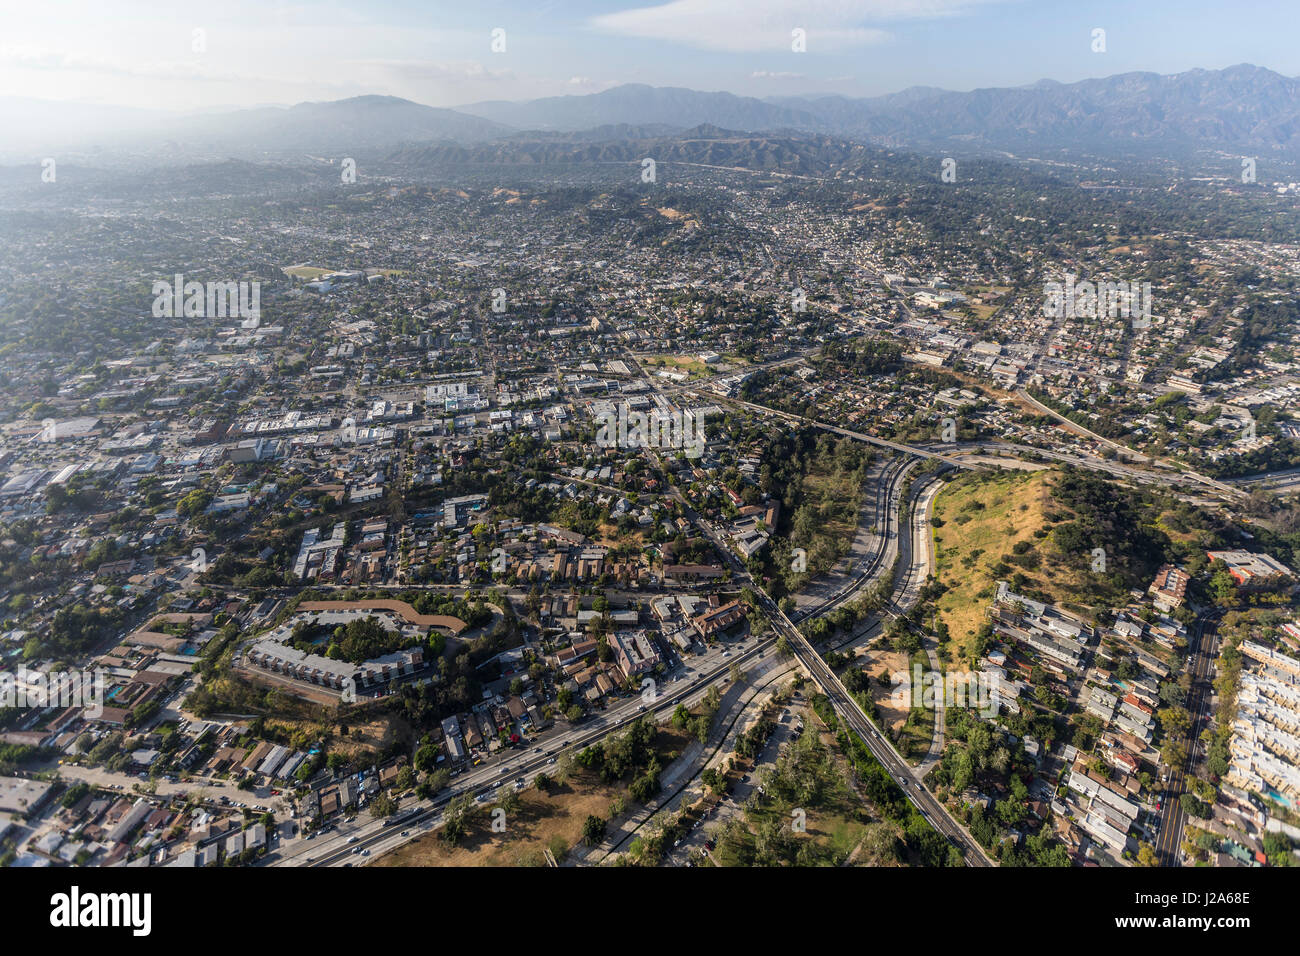 Aerial view of the Highland Park community in northeast Los Angeles, California. - Stock Image